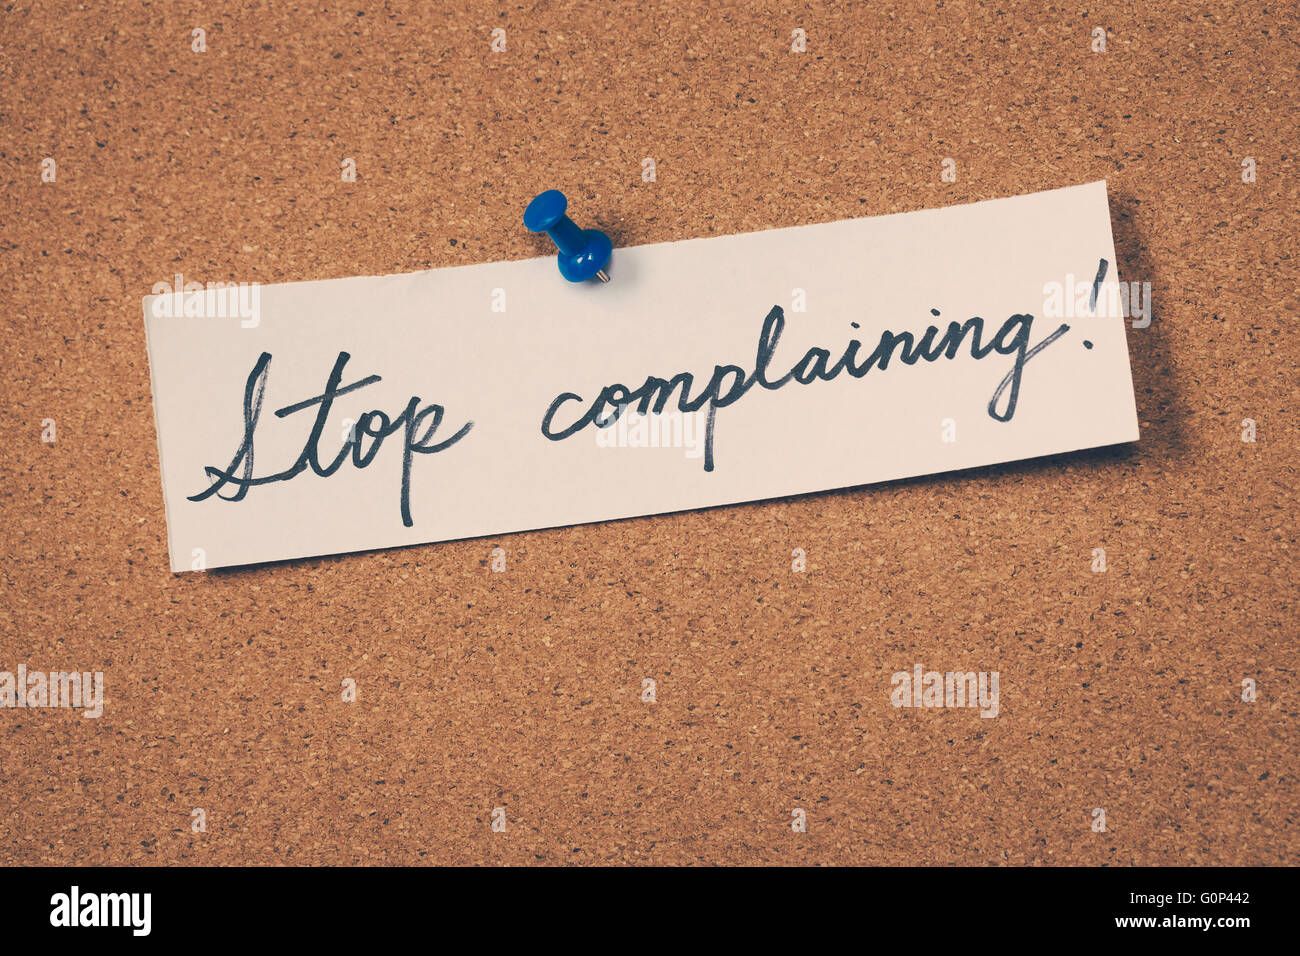 Stop Complaining - Stock Image